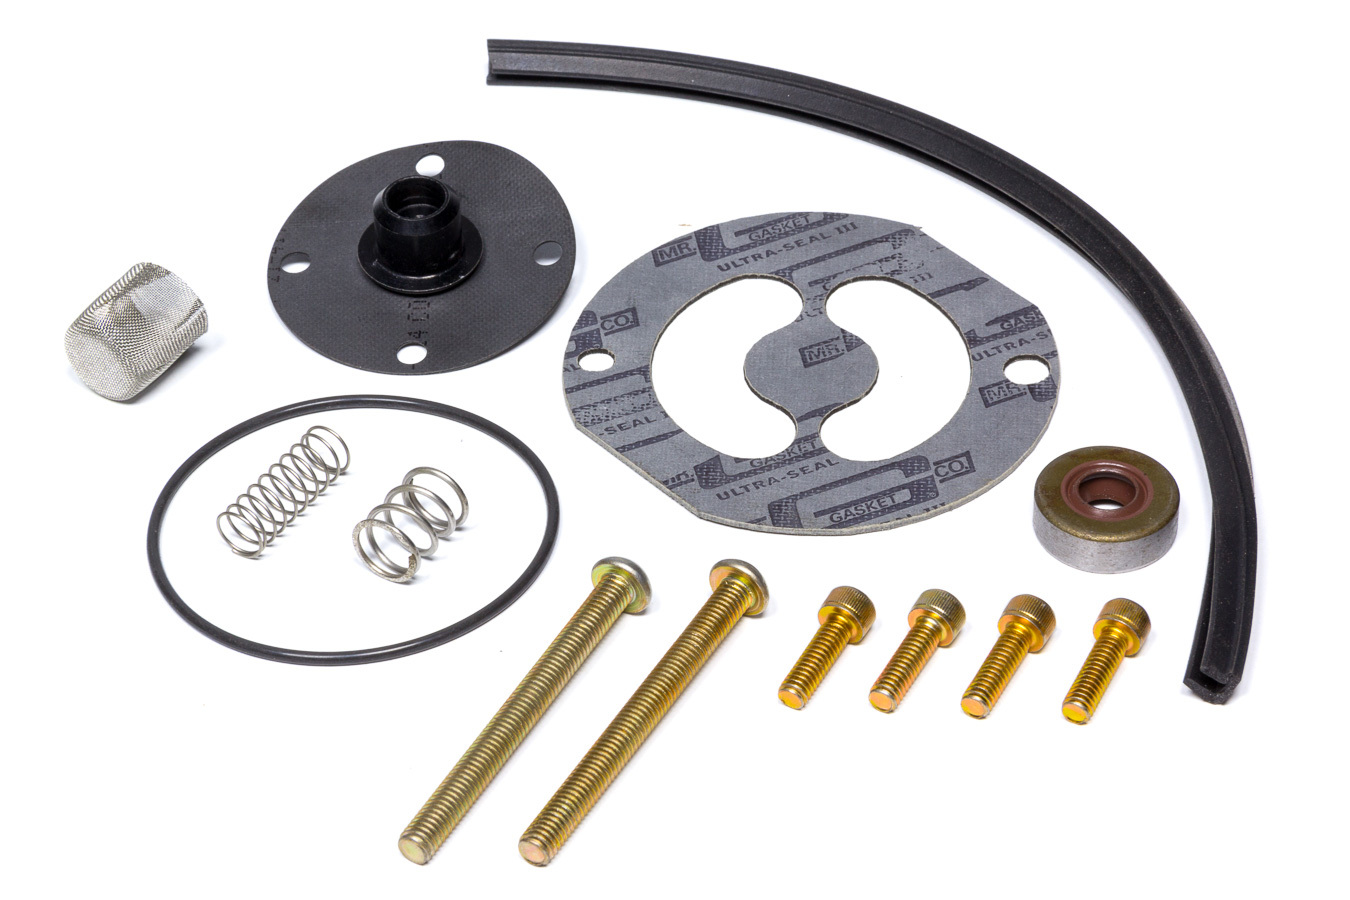 Mallory Seal & Diaphragm Kit for 29269 Gas